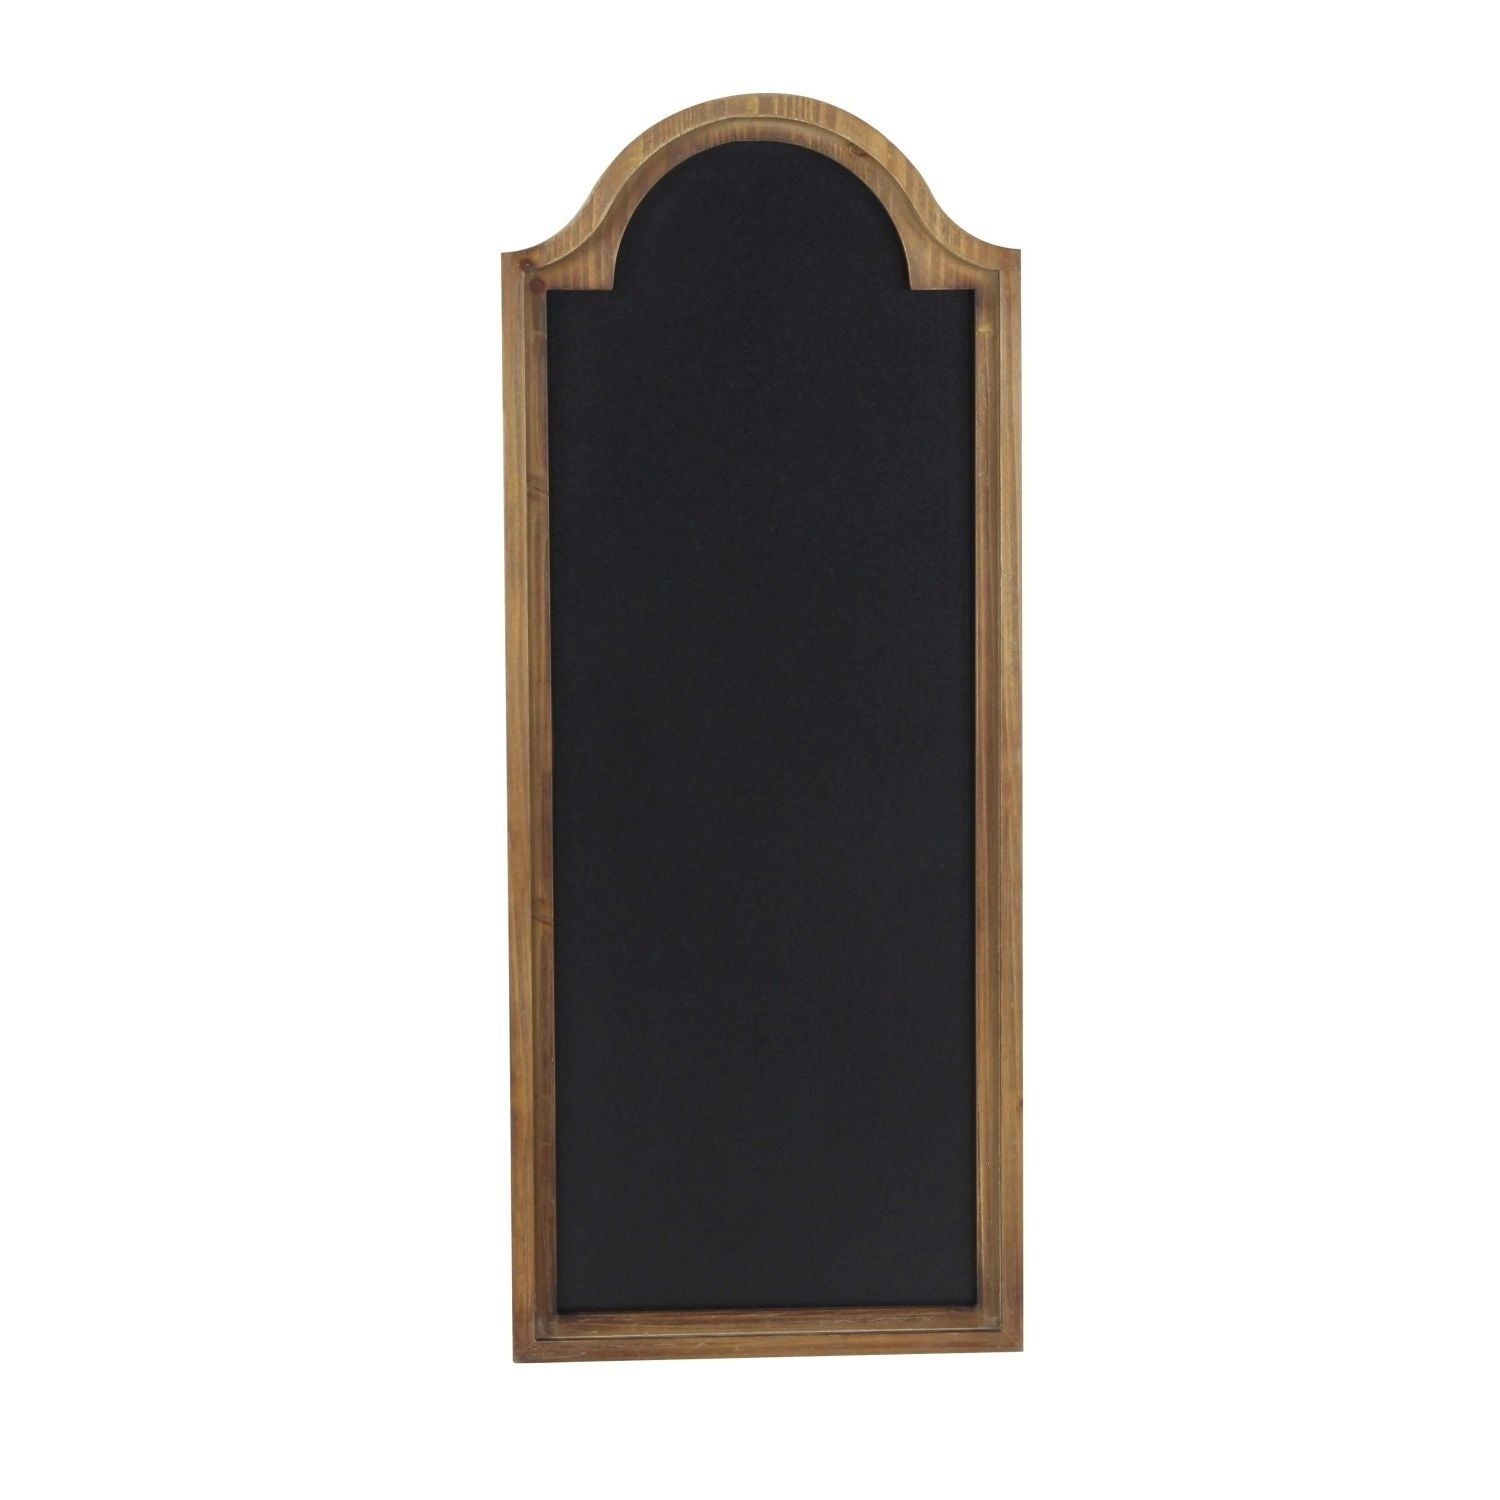 Studio 350 Wood Chalkboard 13 inches wide, 32 inches high